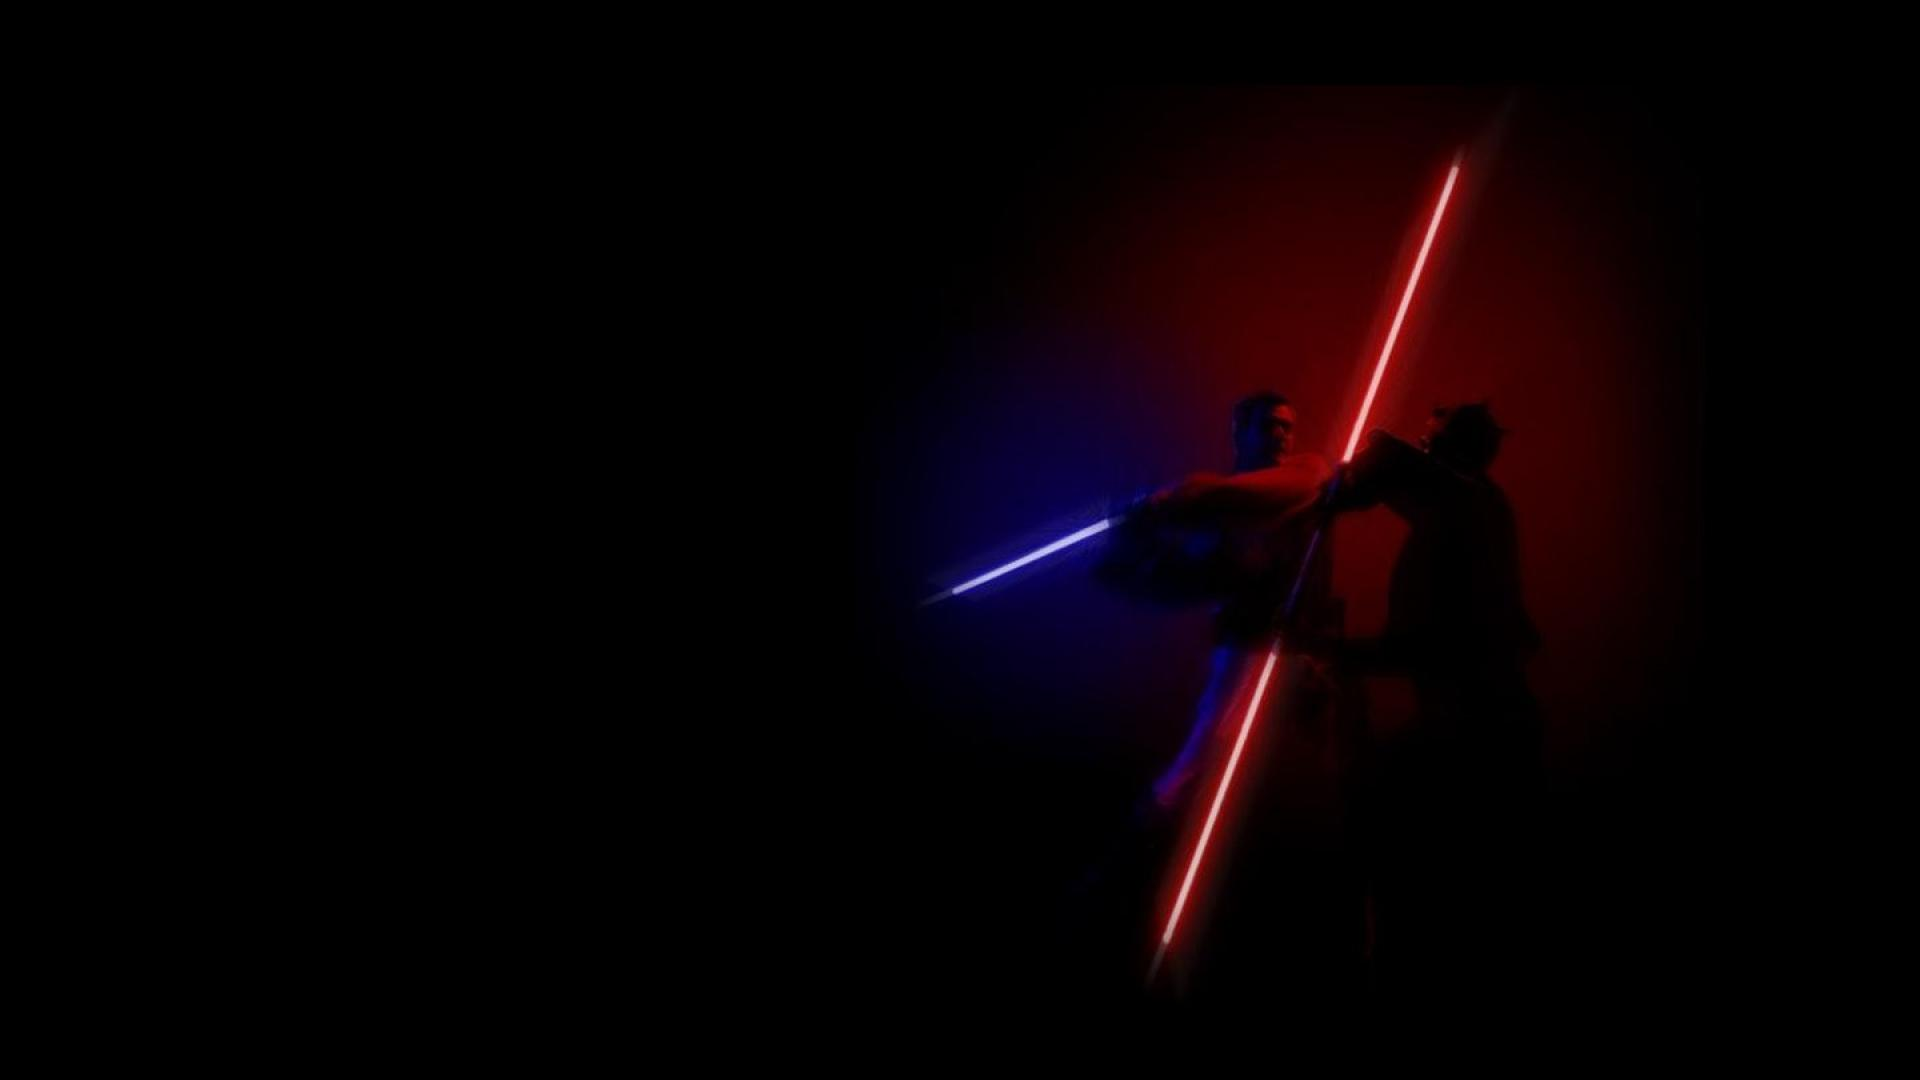 star wars light saber fight battle hd wallpaper   5046   HQ Desktop 1920x1080